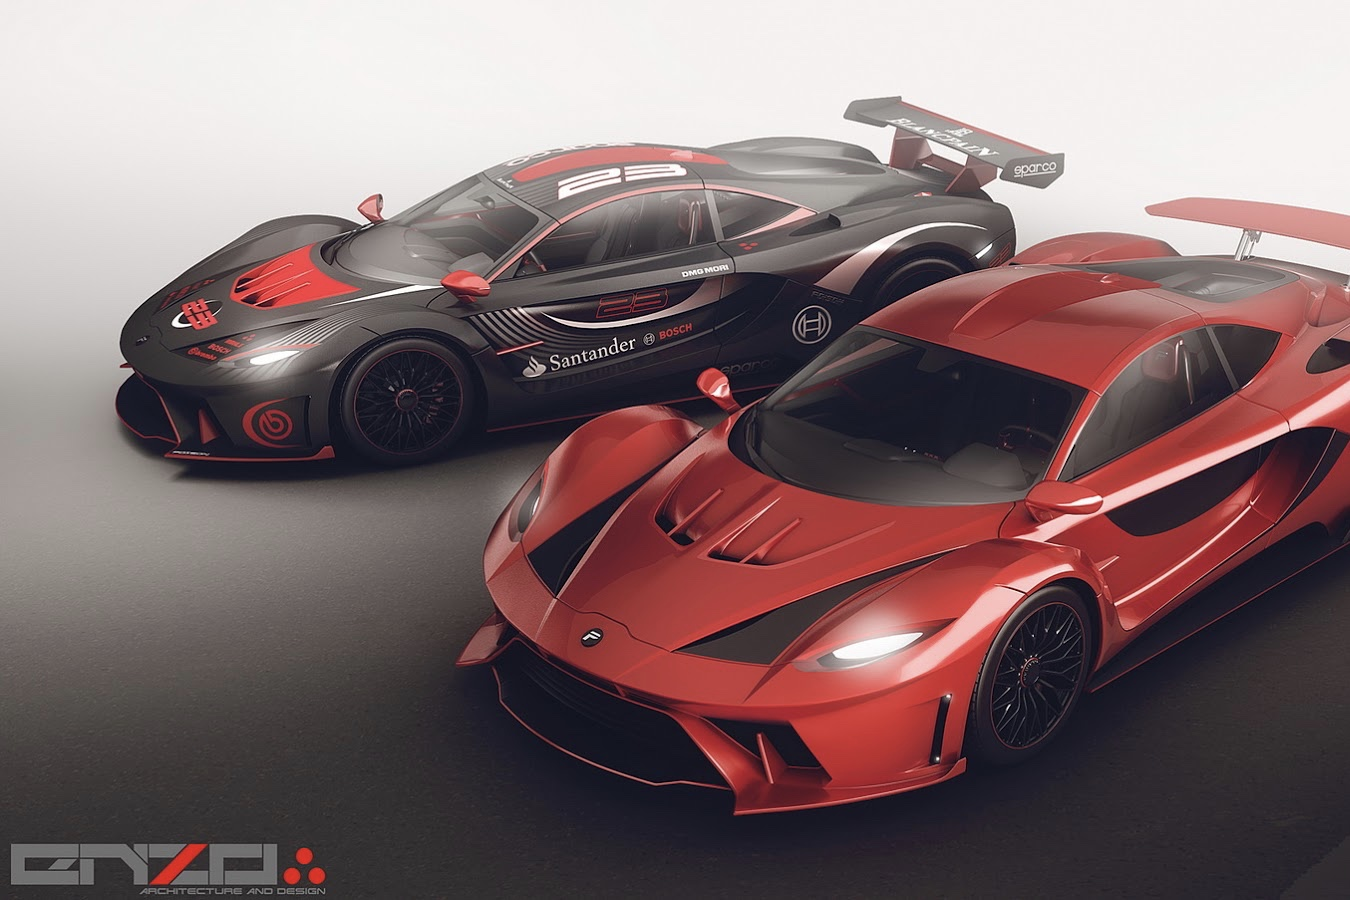 The Poison Concept Is A Stunning Realistic Supercar... 1